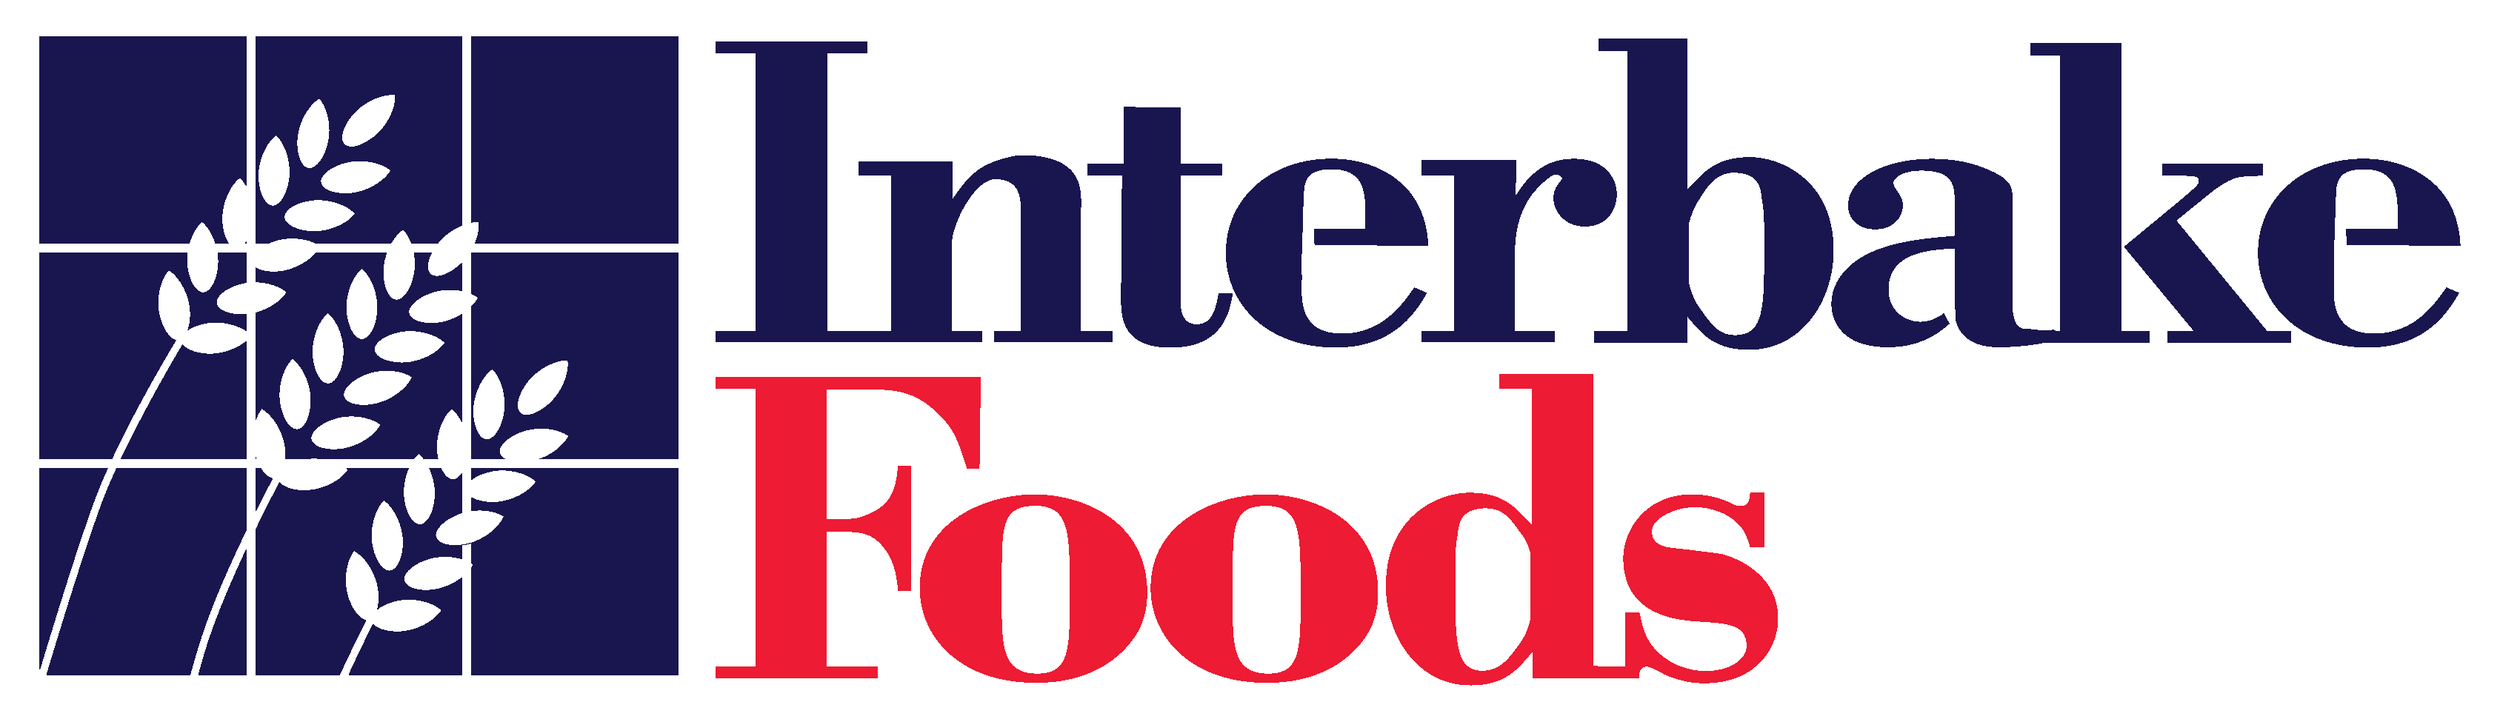 INTRBAKE FOODS 2c red_blue LOGO.png